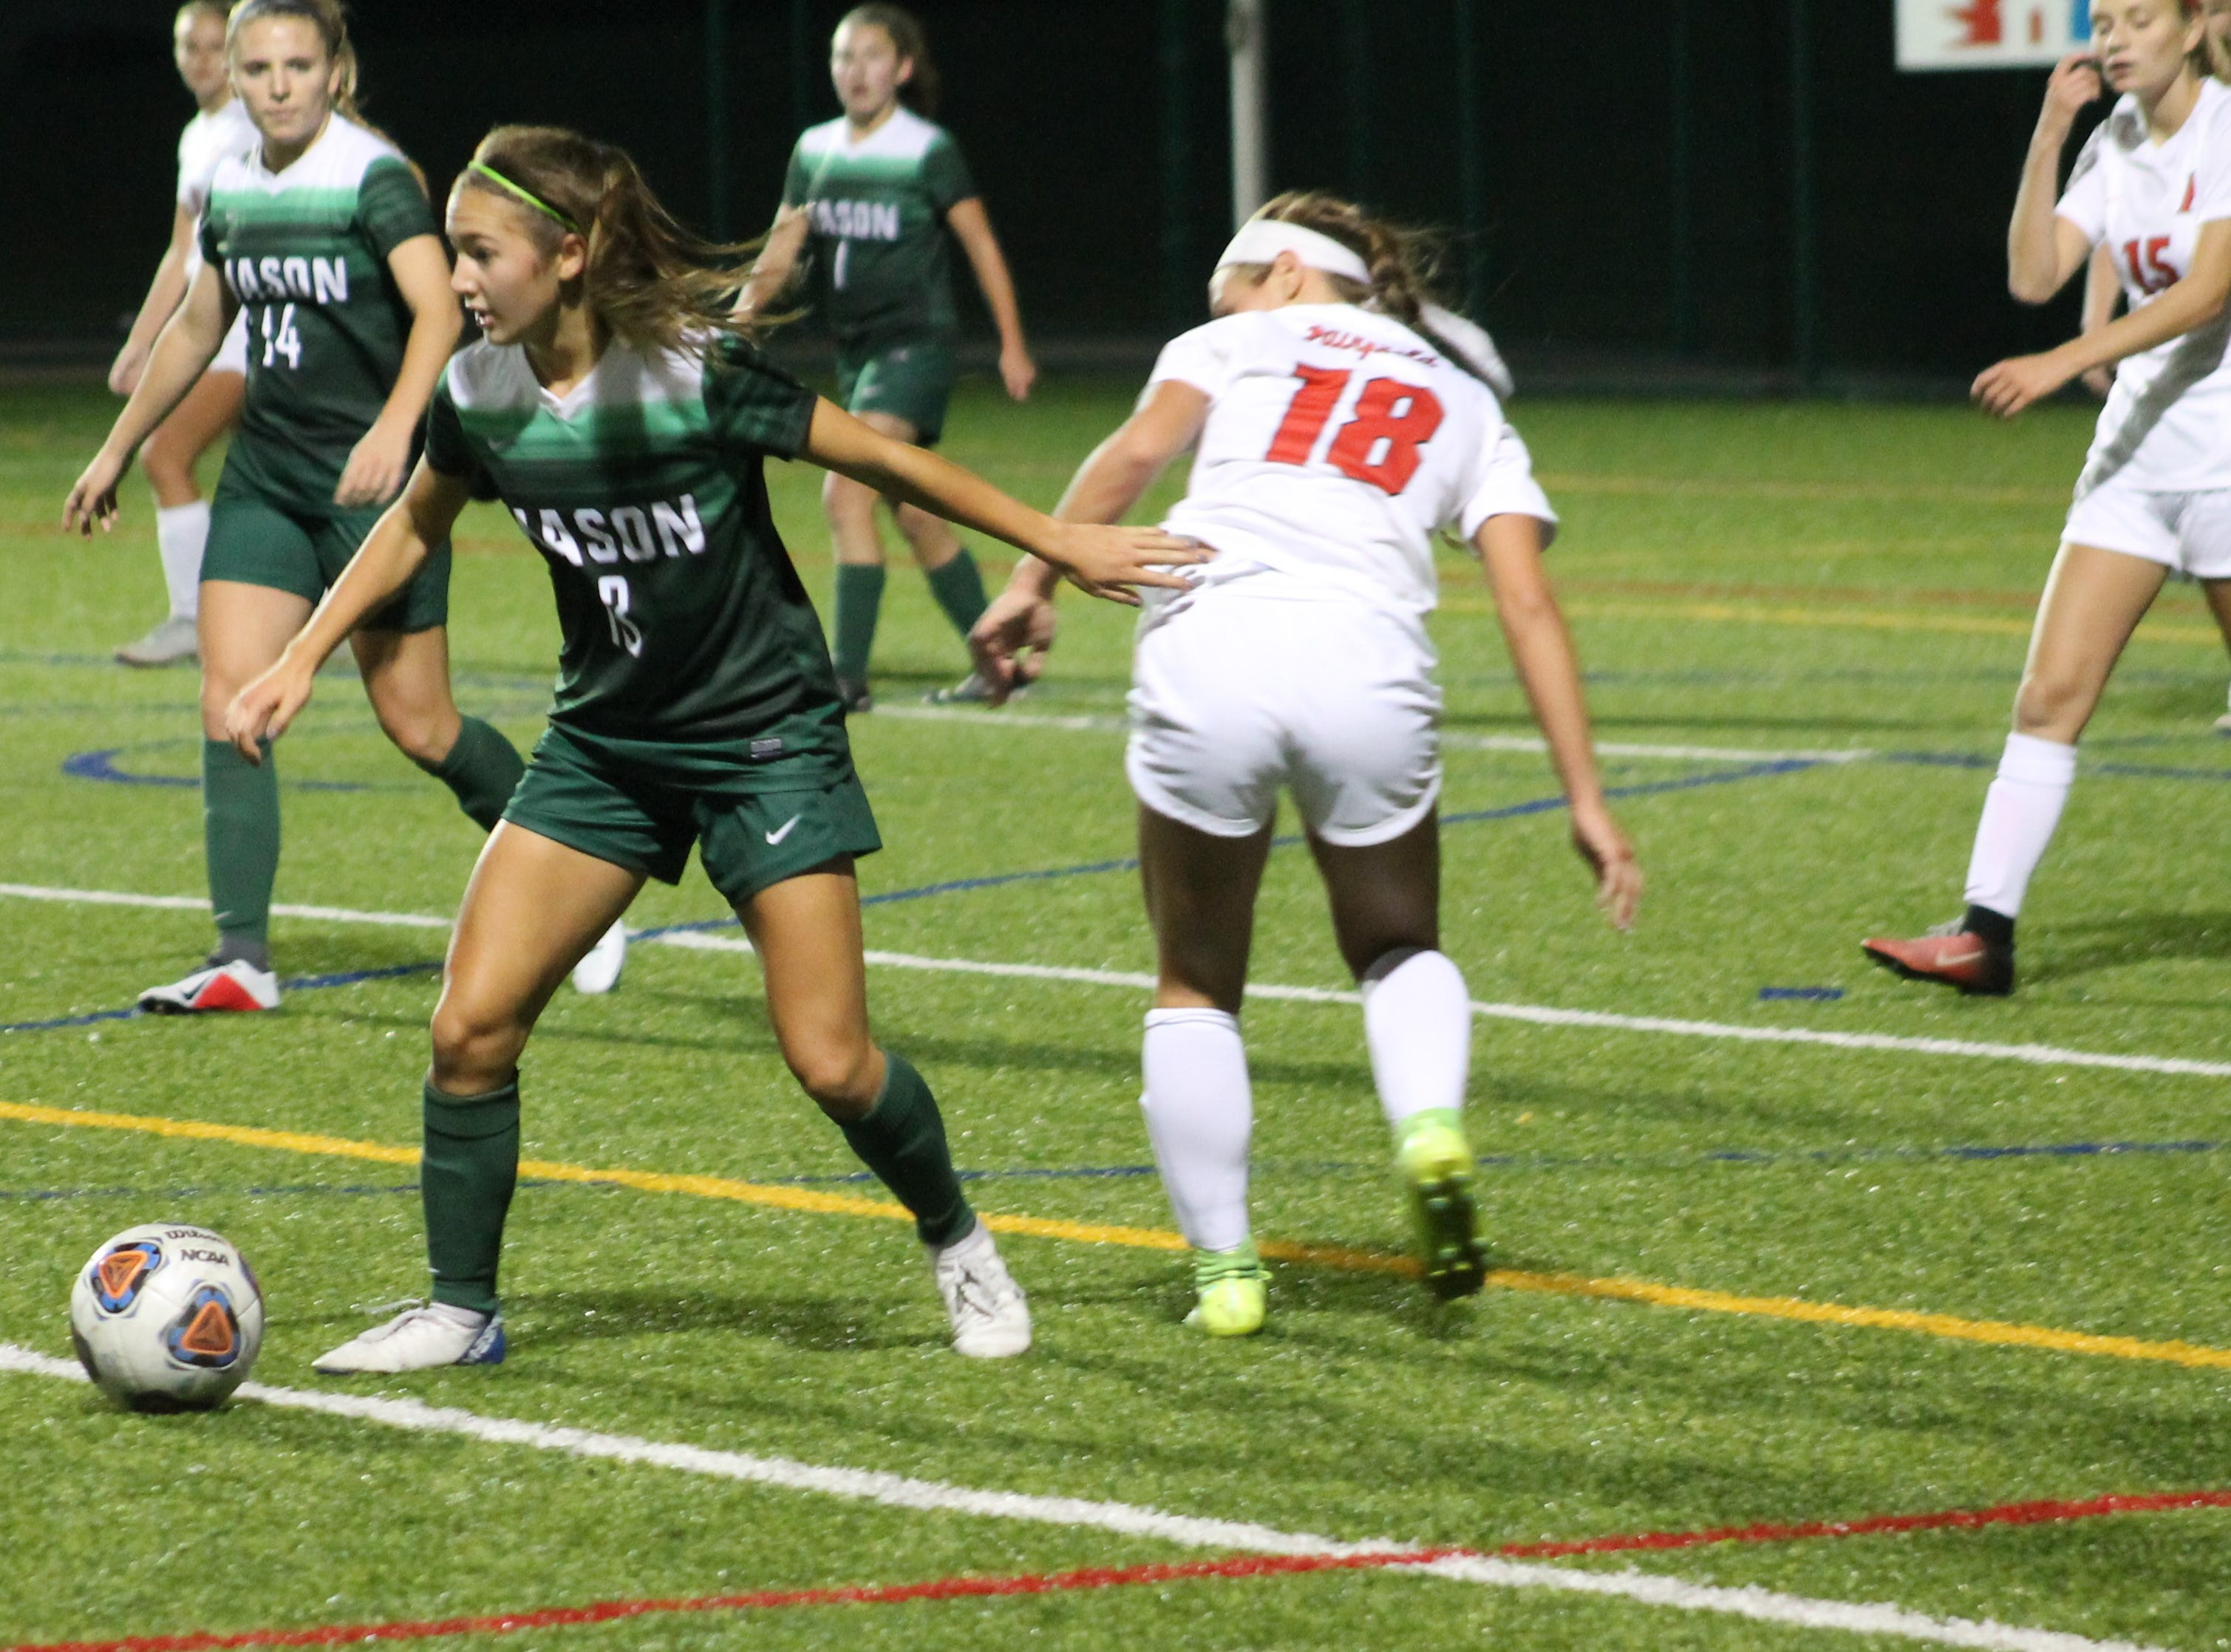 Mason sophomore Maria Speas comes away with the ball Oct. 12 against Fairfield